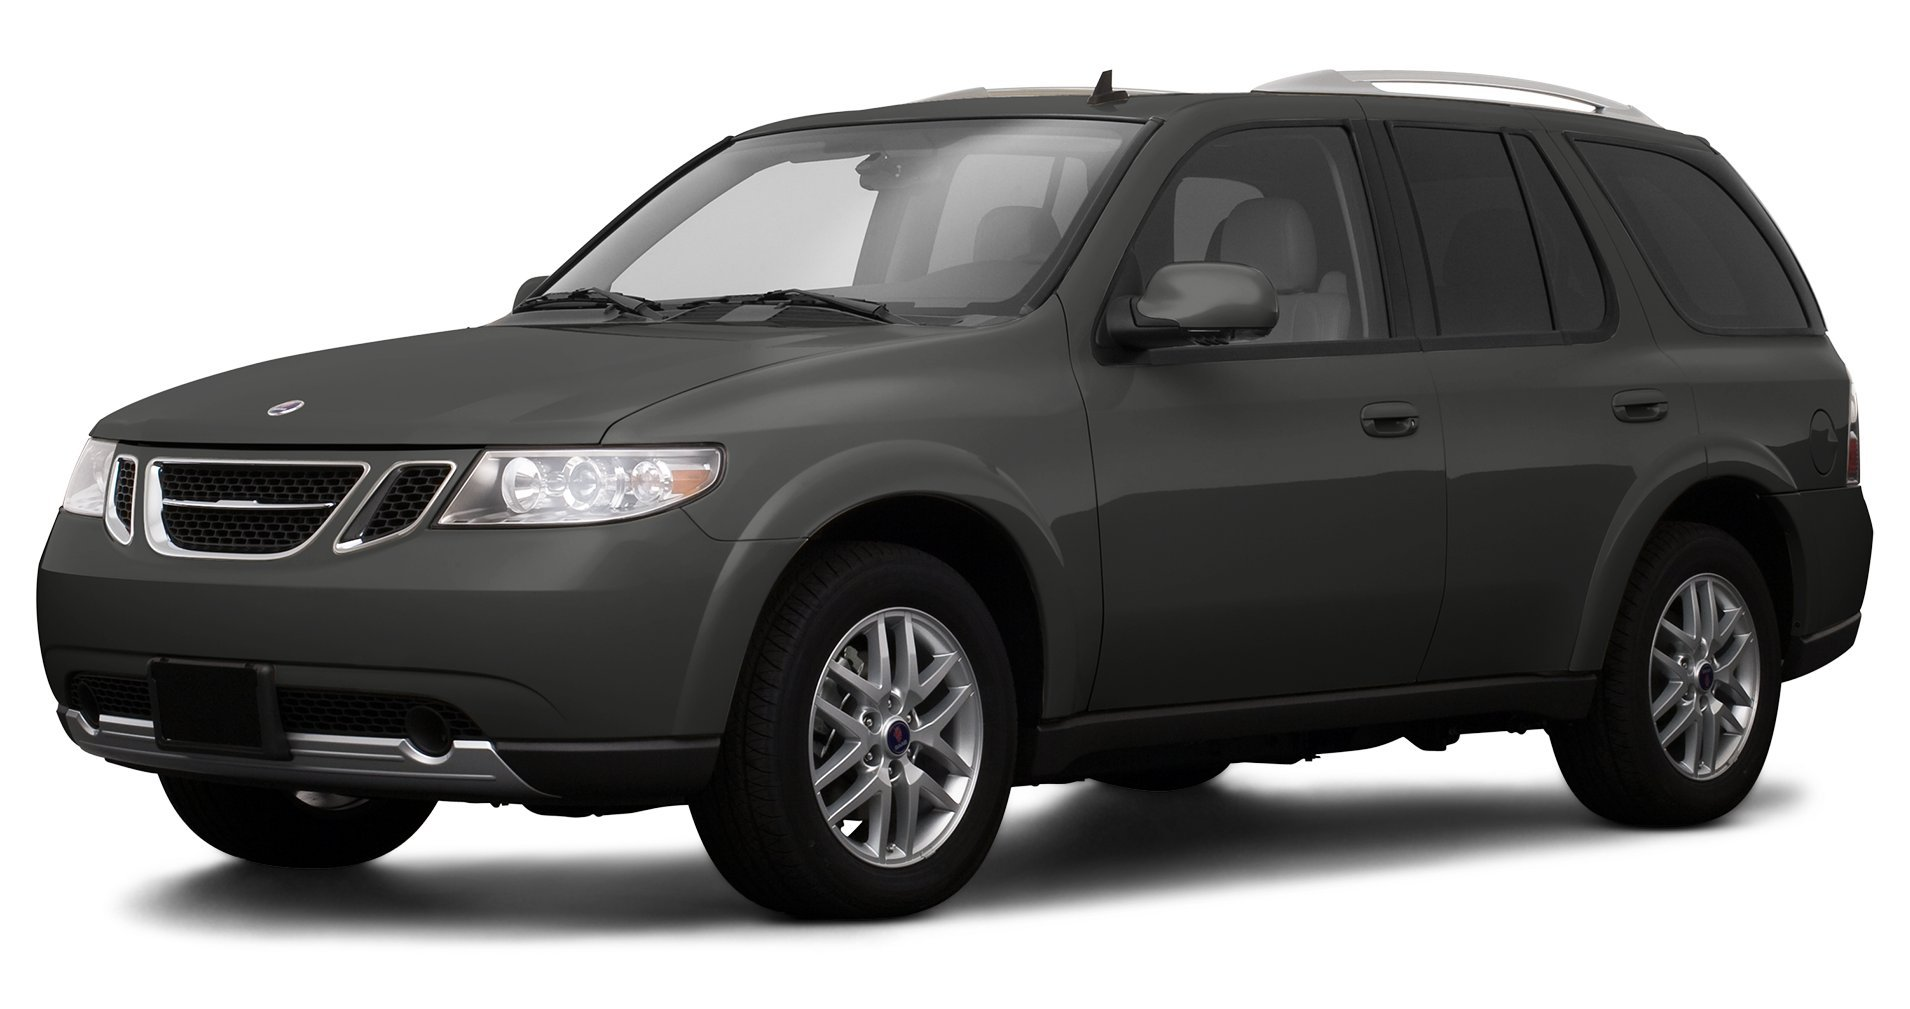 saab 9 7x manual open source user manual u2022 rh dramatic varieties com 2007 saab 9-7x repair manual 2007 Saab 9-7X Interior